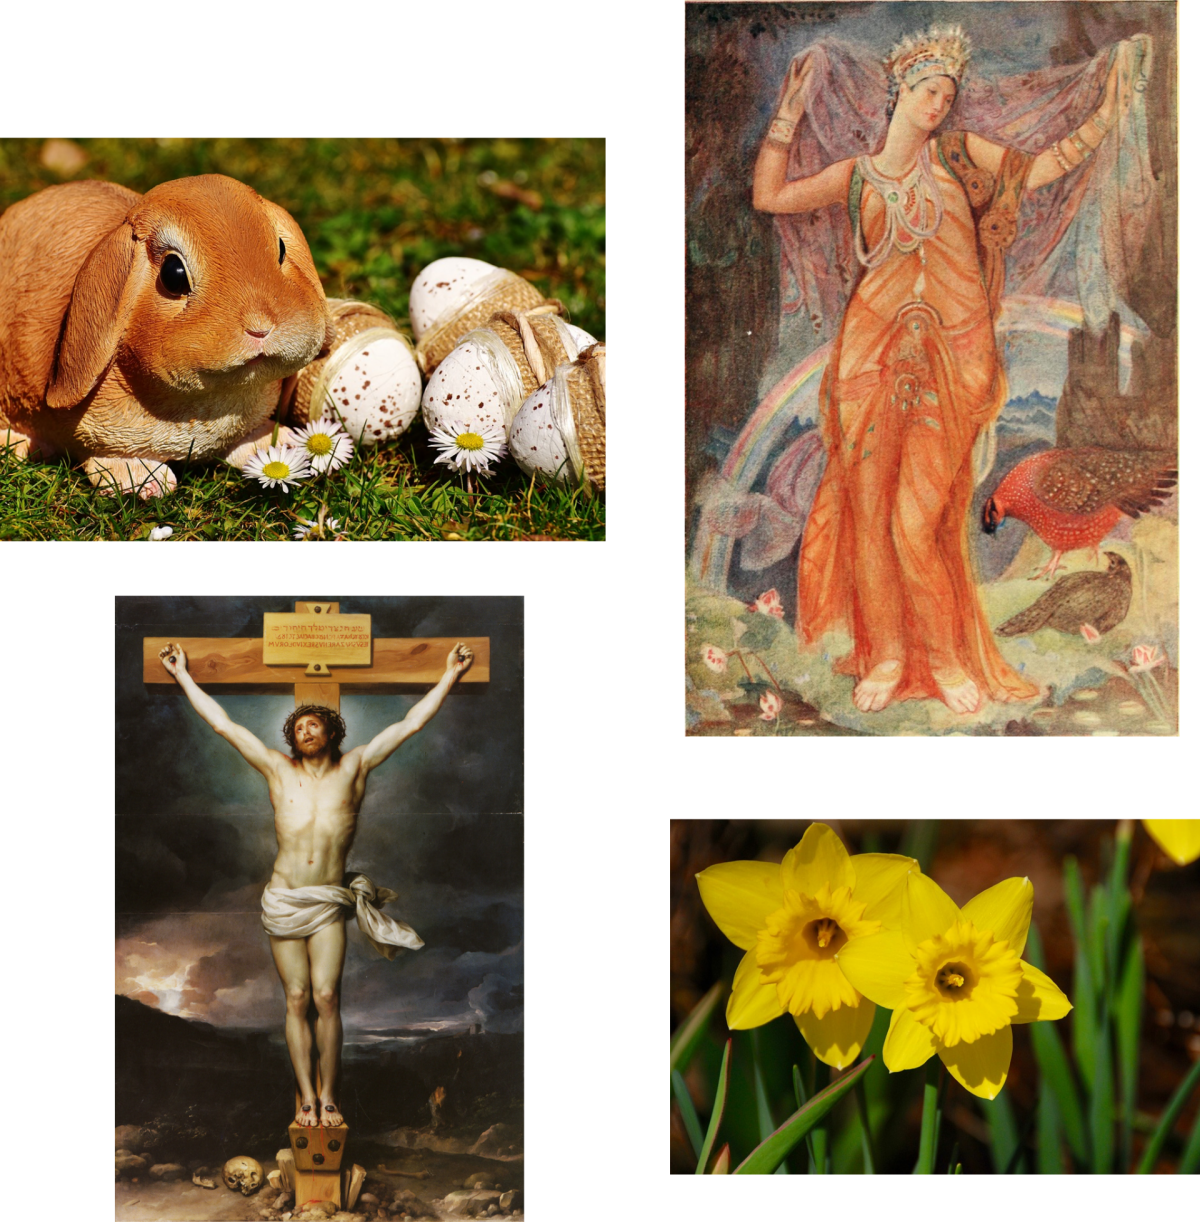 Harmony UU member Karen Gottschall explores the confluence of peoples, ideas, and cultures represented in our modern celebrations of Easter, April Fool's Day, and other spring traditions.